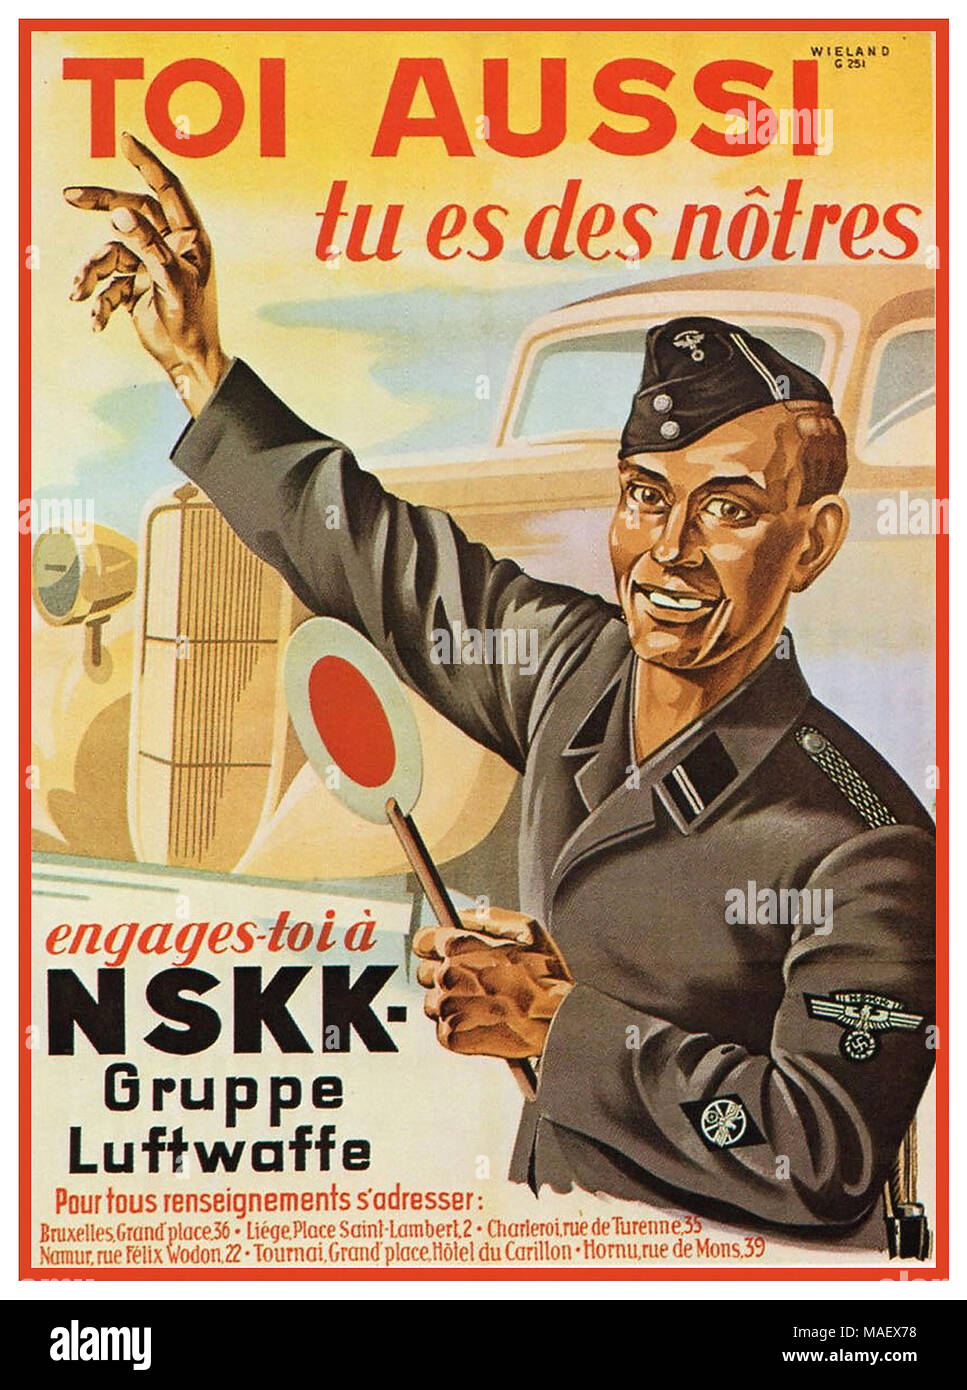 WW2 Vintage Nazi Germany Propaganda Recruitment Poster in Belgium 'You Too – You're One of Us. Enlist to NSKK (National Socialist Motor Corps) Gruppe Luftwaffe'  Belgium/Flemish 'Voluntarily enlist in an auxiliary unit of the German Luftwaffe'    1939-1945 World War II Nazi Work Programme - Stock Image